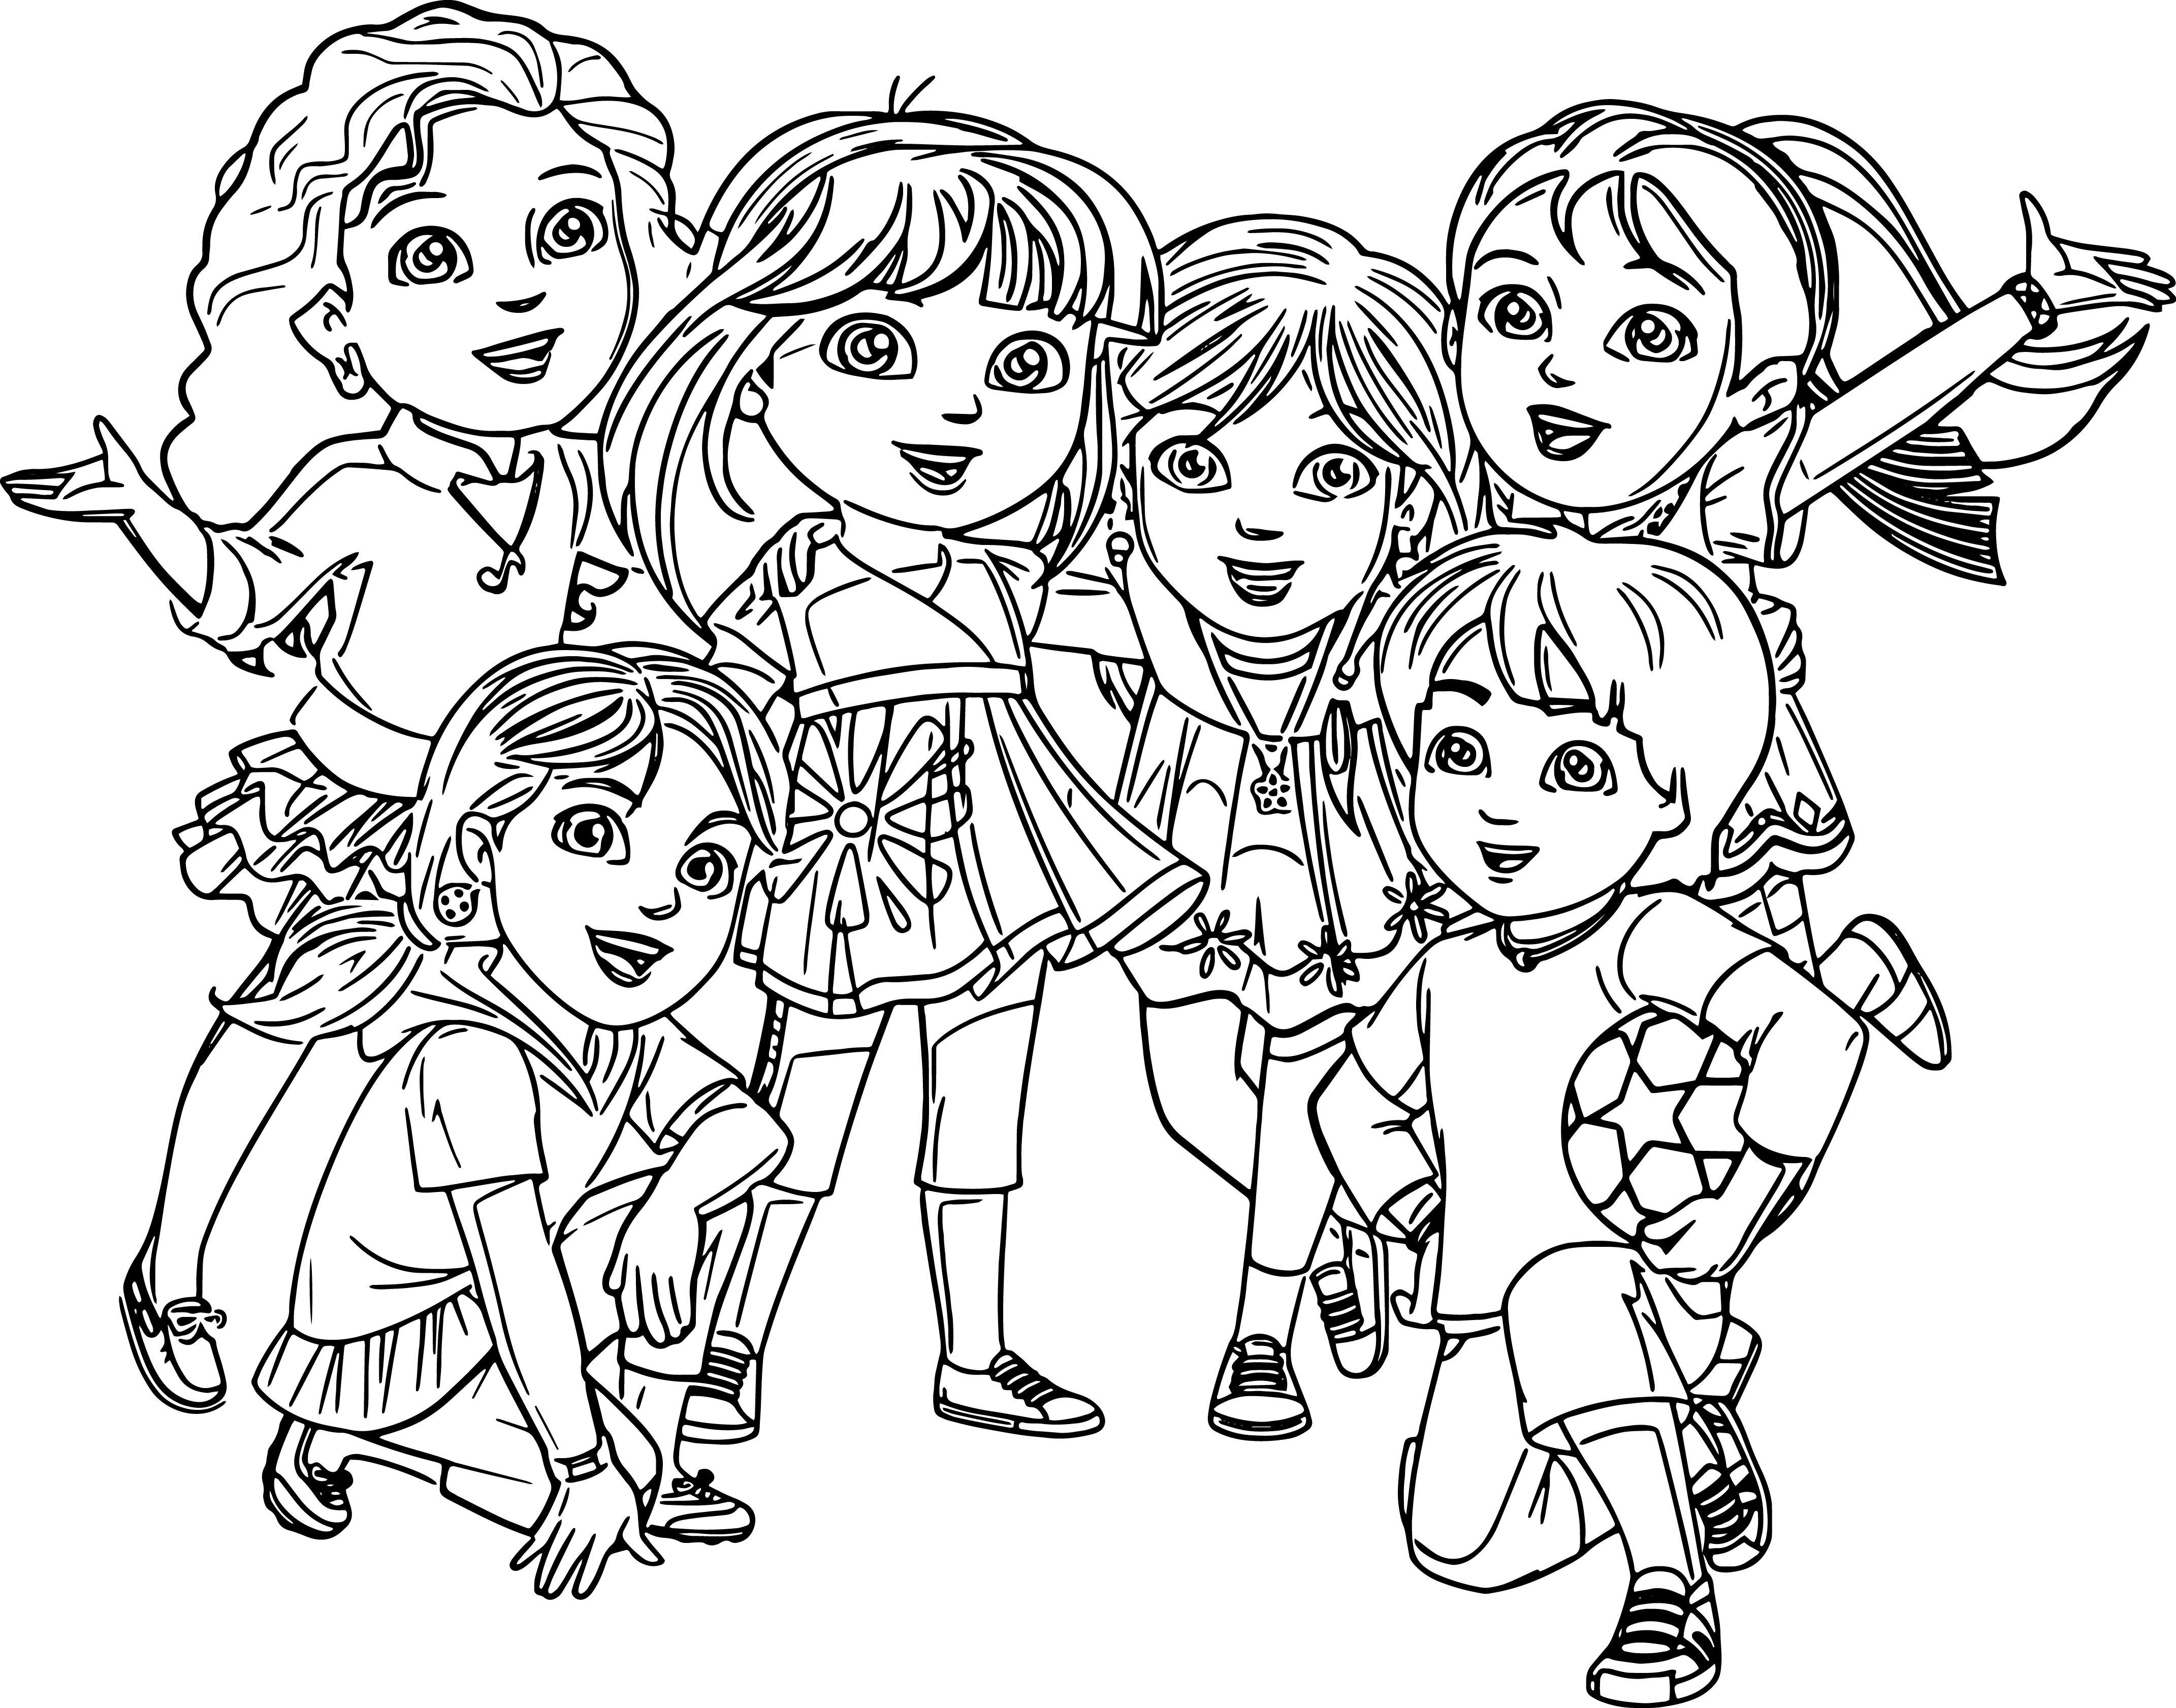 Coloring pages dora and friends